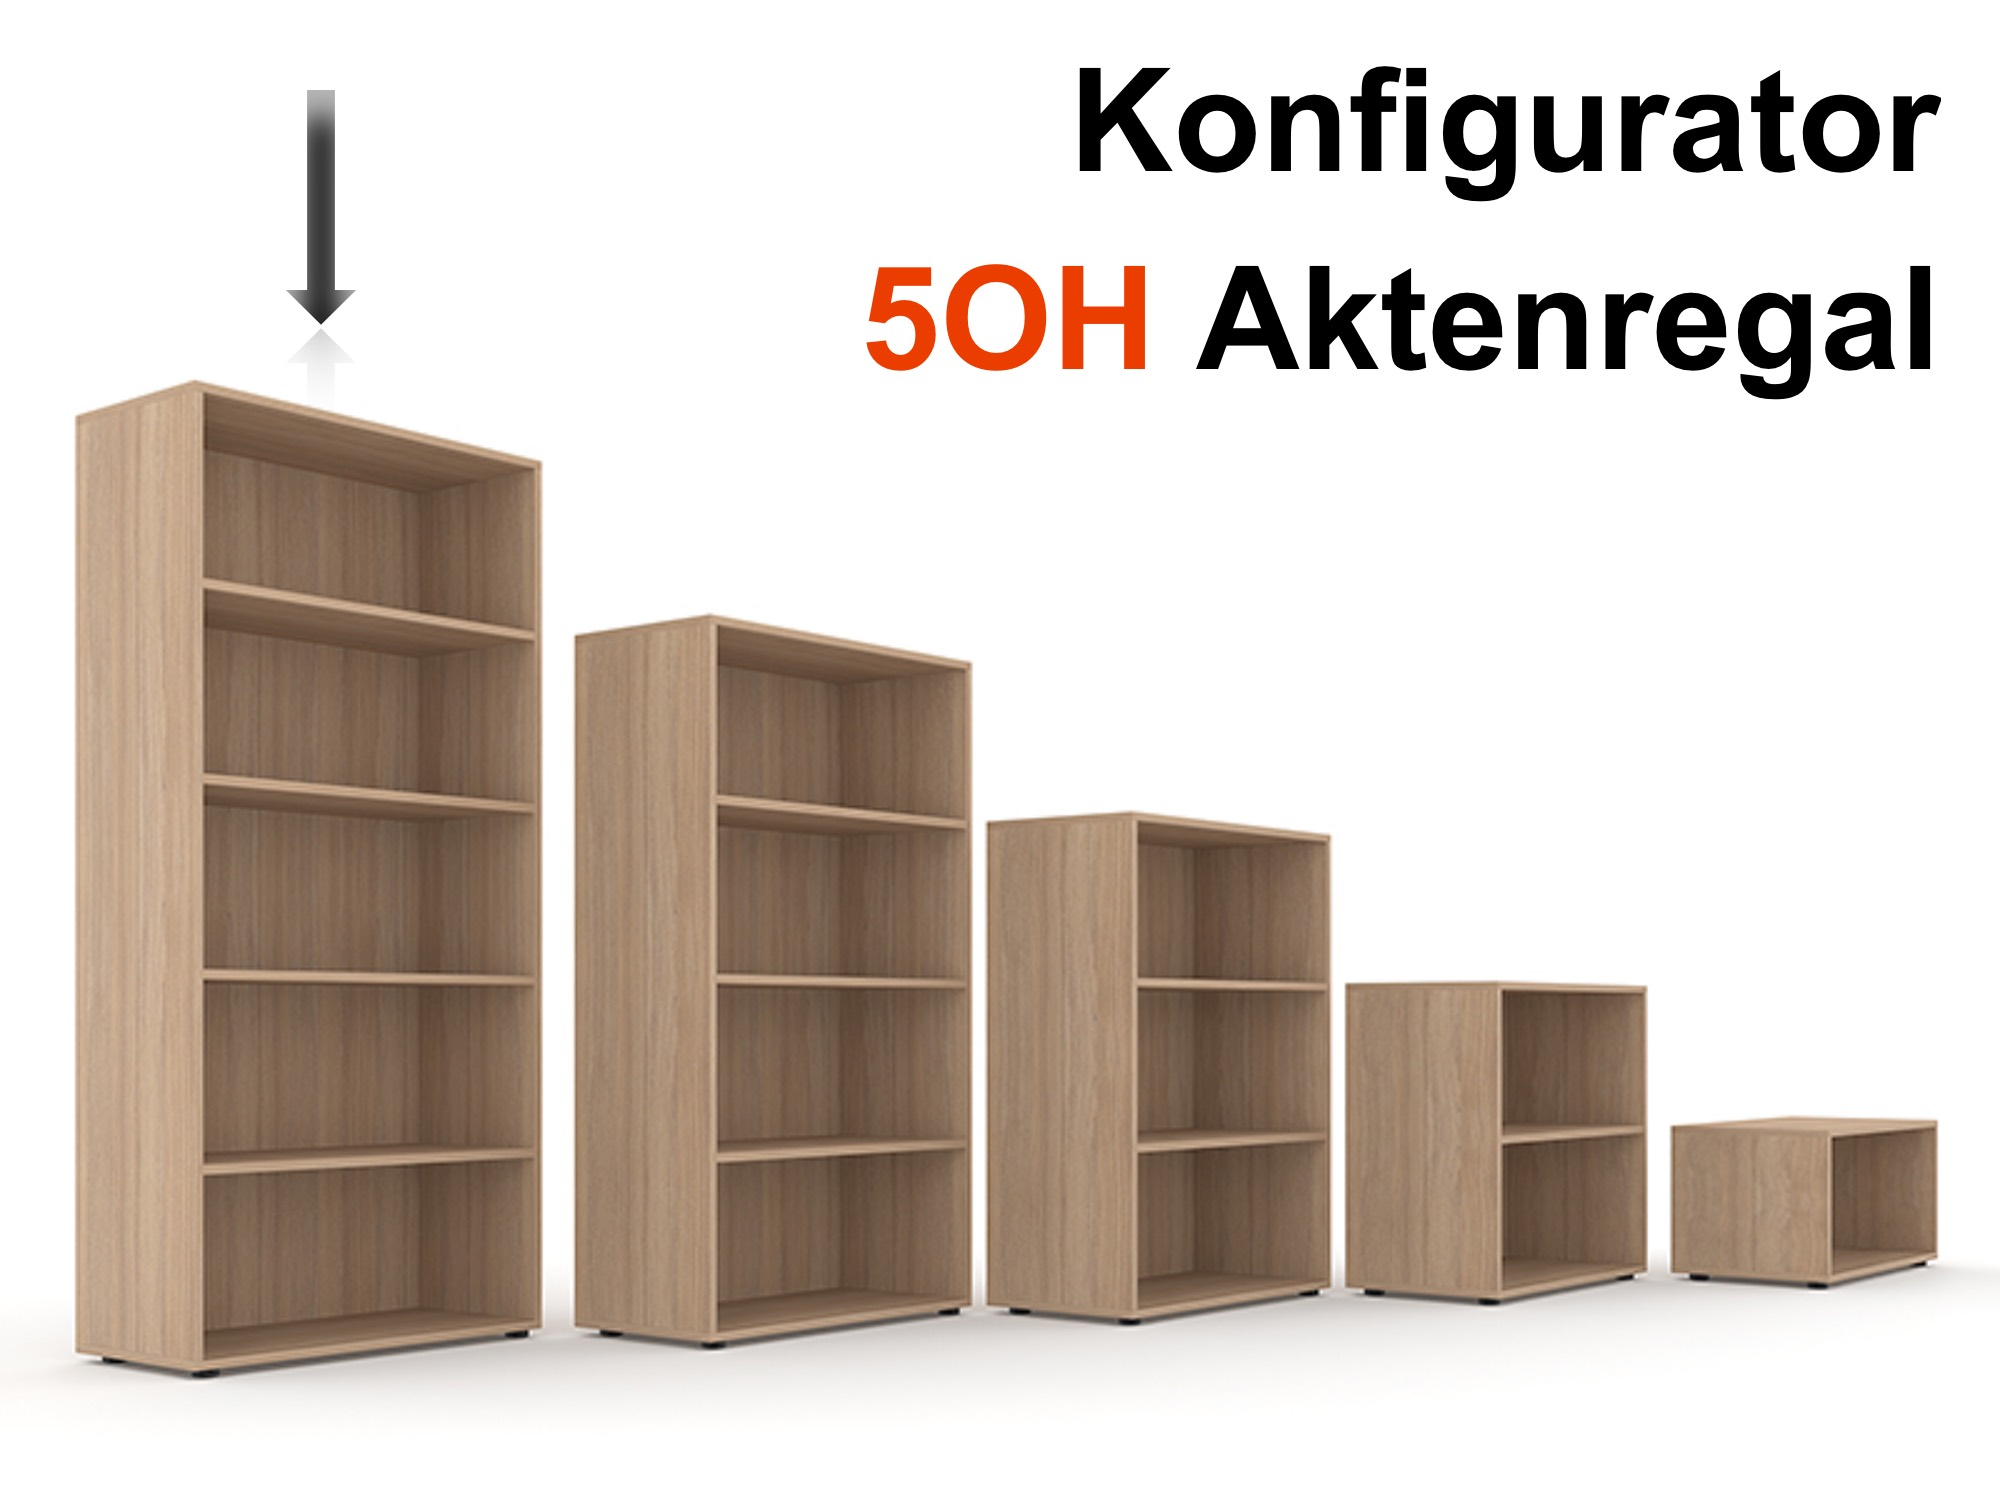 aktenregal selection 5oh konfigurator aktenregale b roregale alle kategorien b rom bel. Black Bedroom Furniture Sets. Home Design Ideas